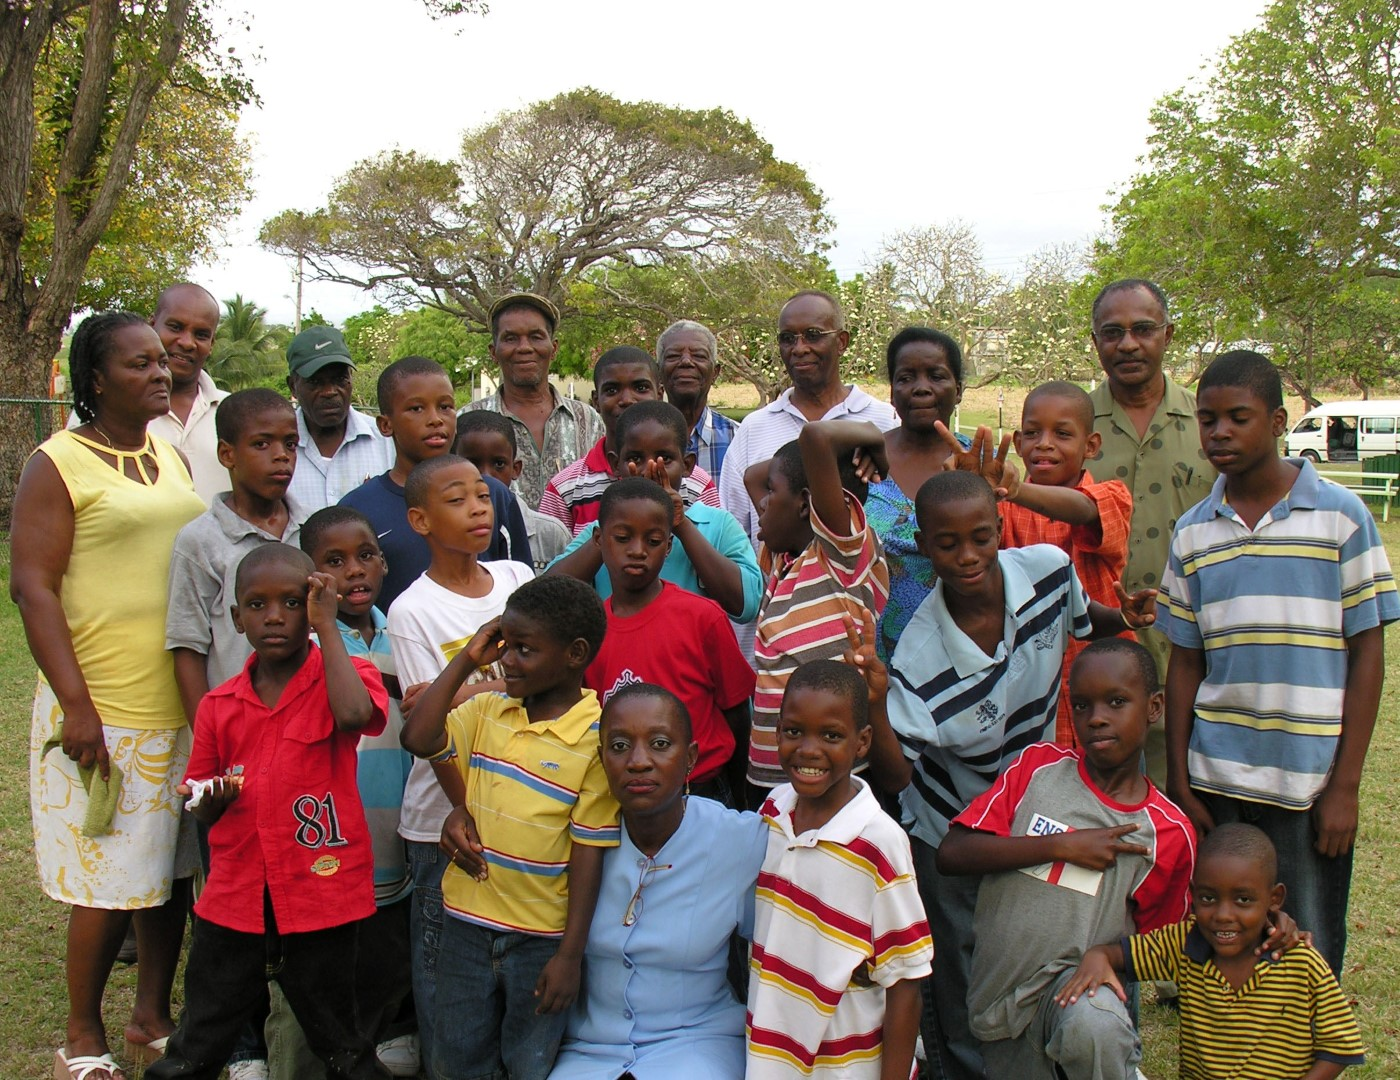 Men's Fellowship at picnic with children